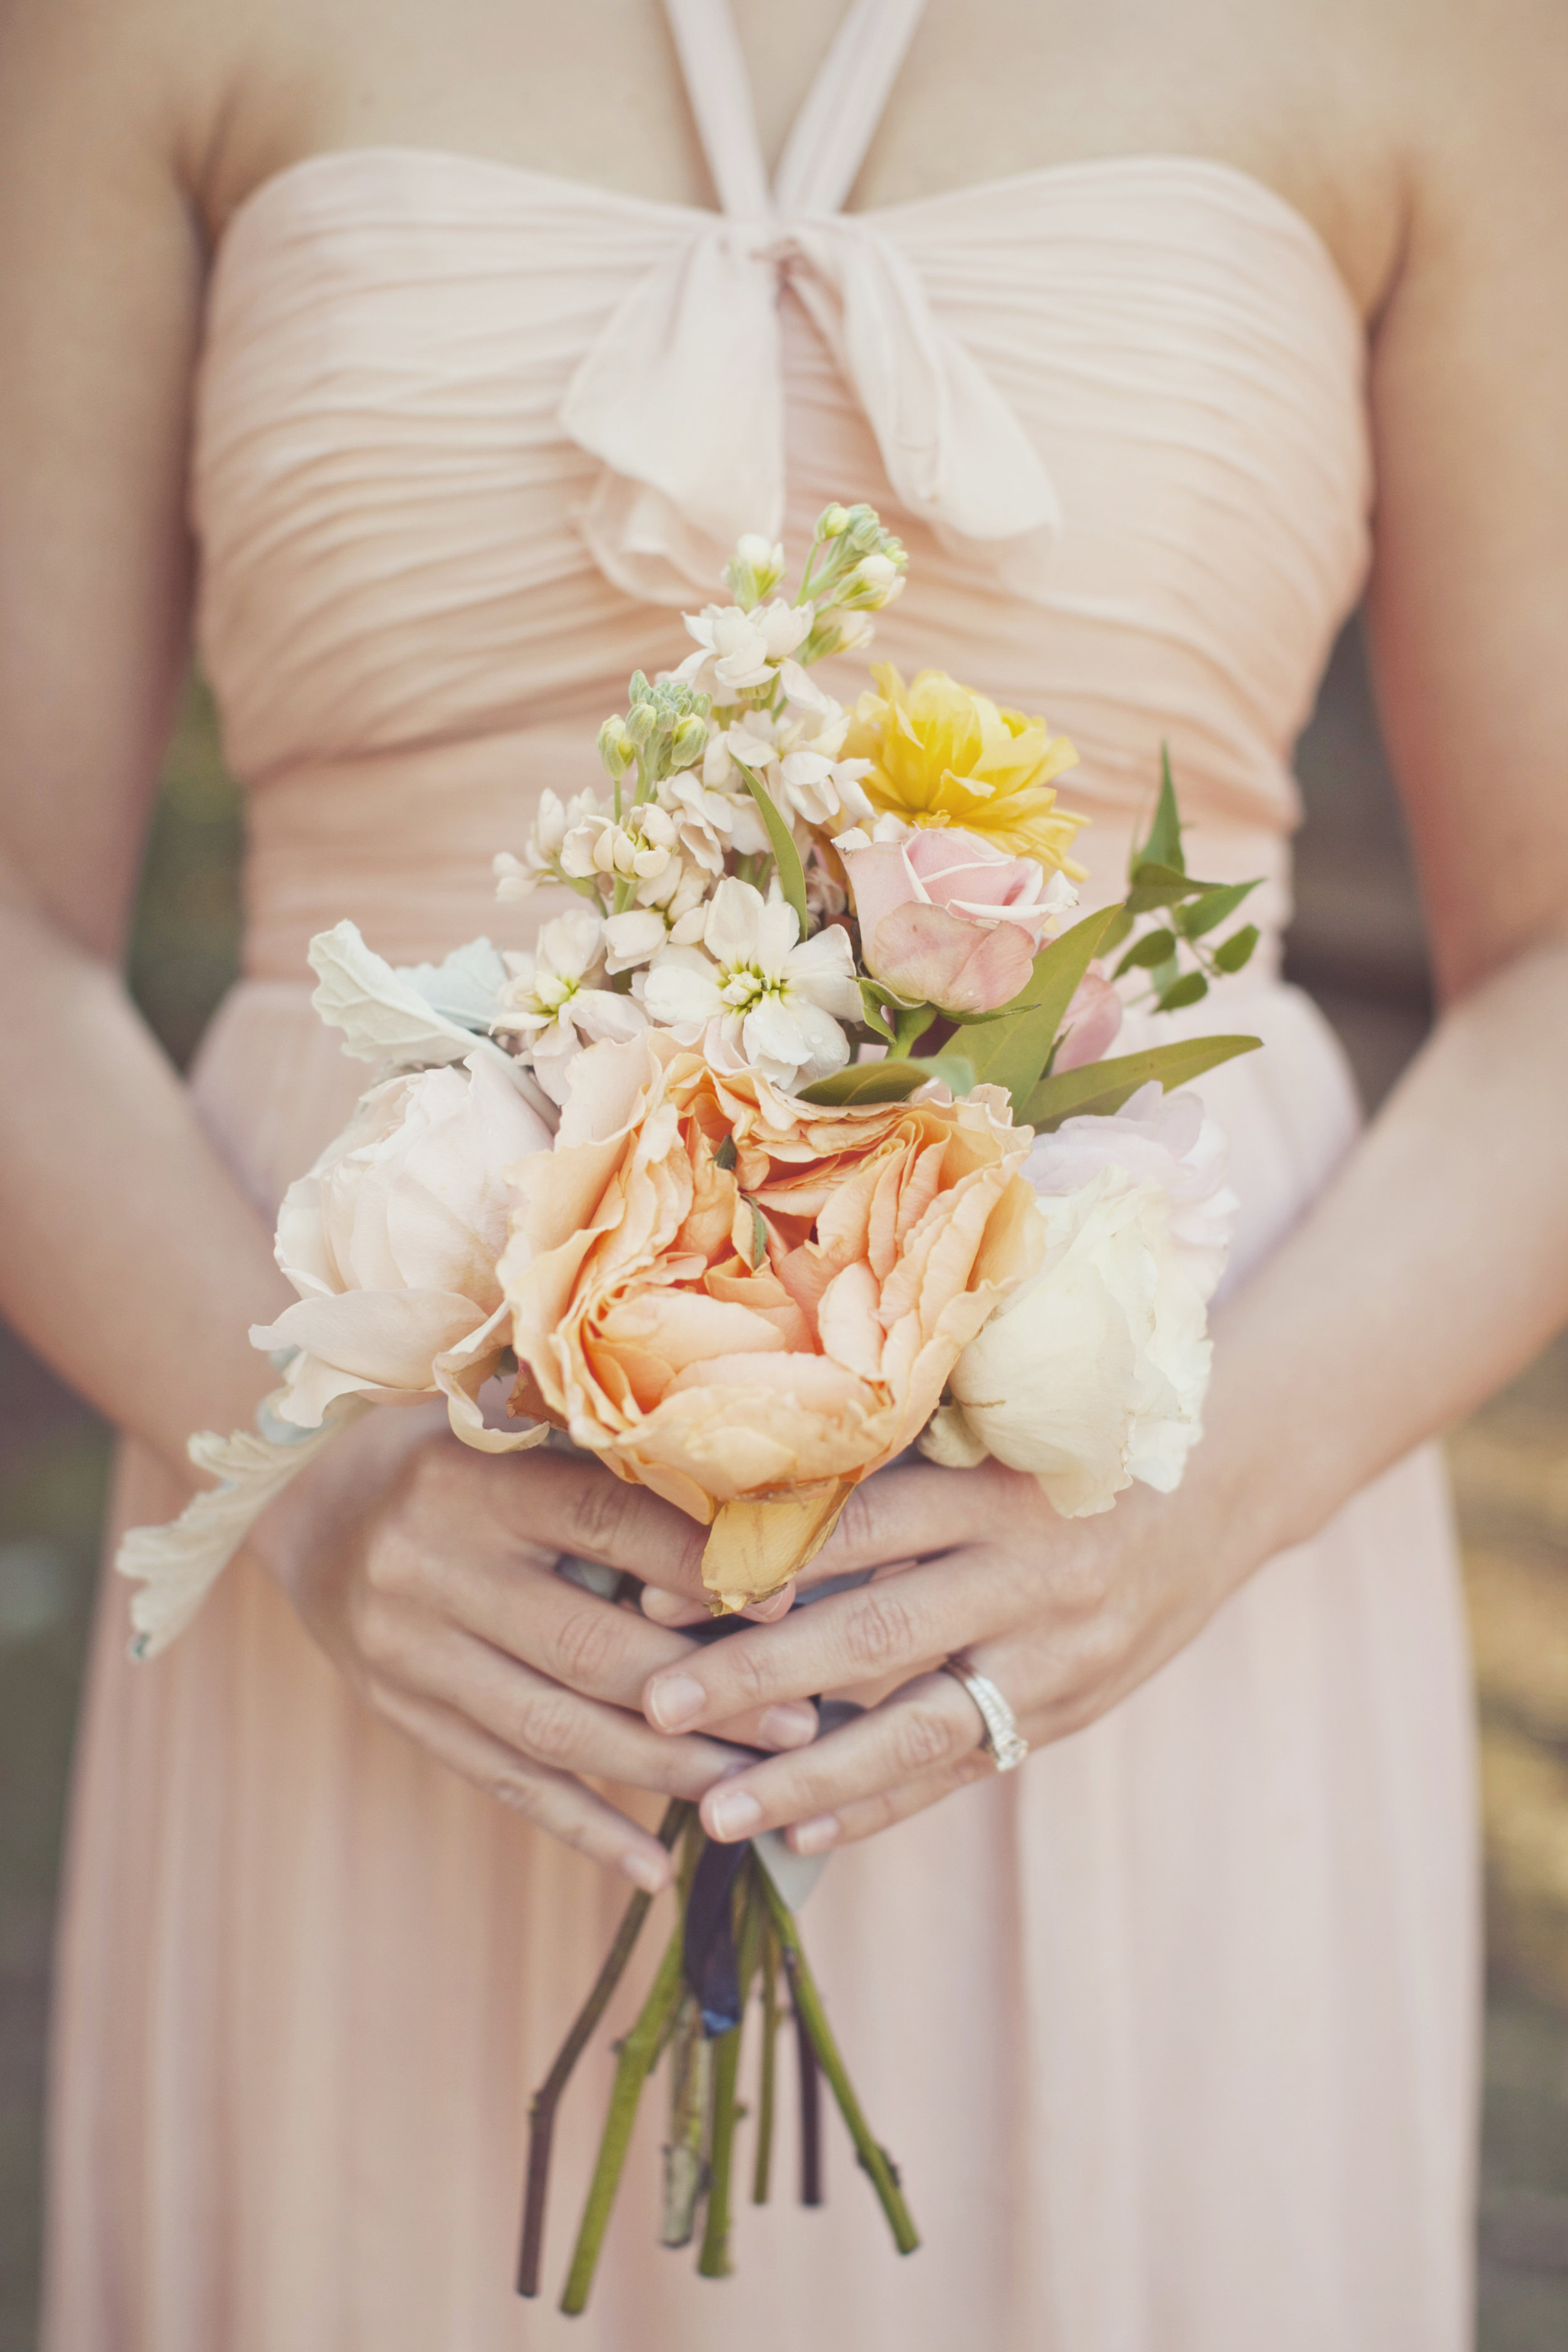 Simply-Charming-Socials_Atlanta-Wedding-Planner_Our-Labor-Of-Love_Maggie-and-Greg_8.jpg